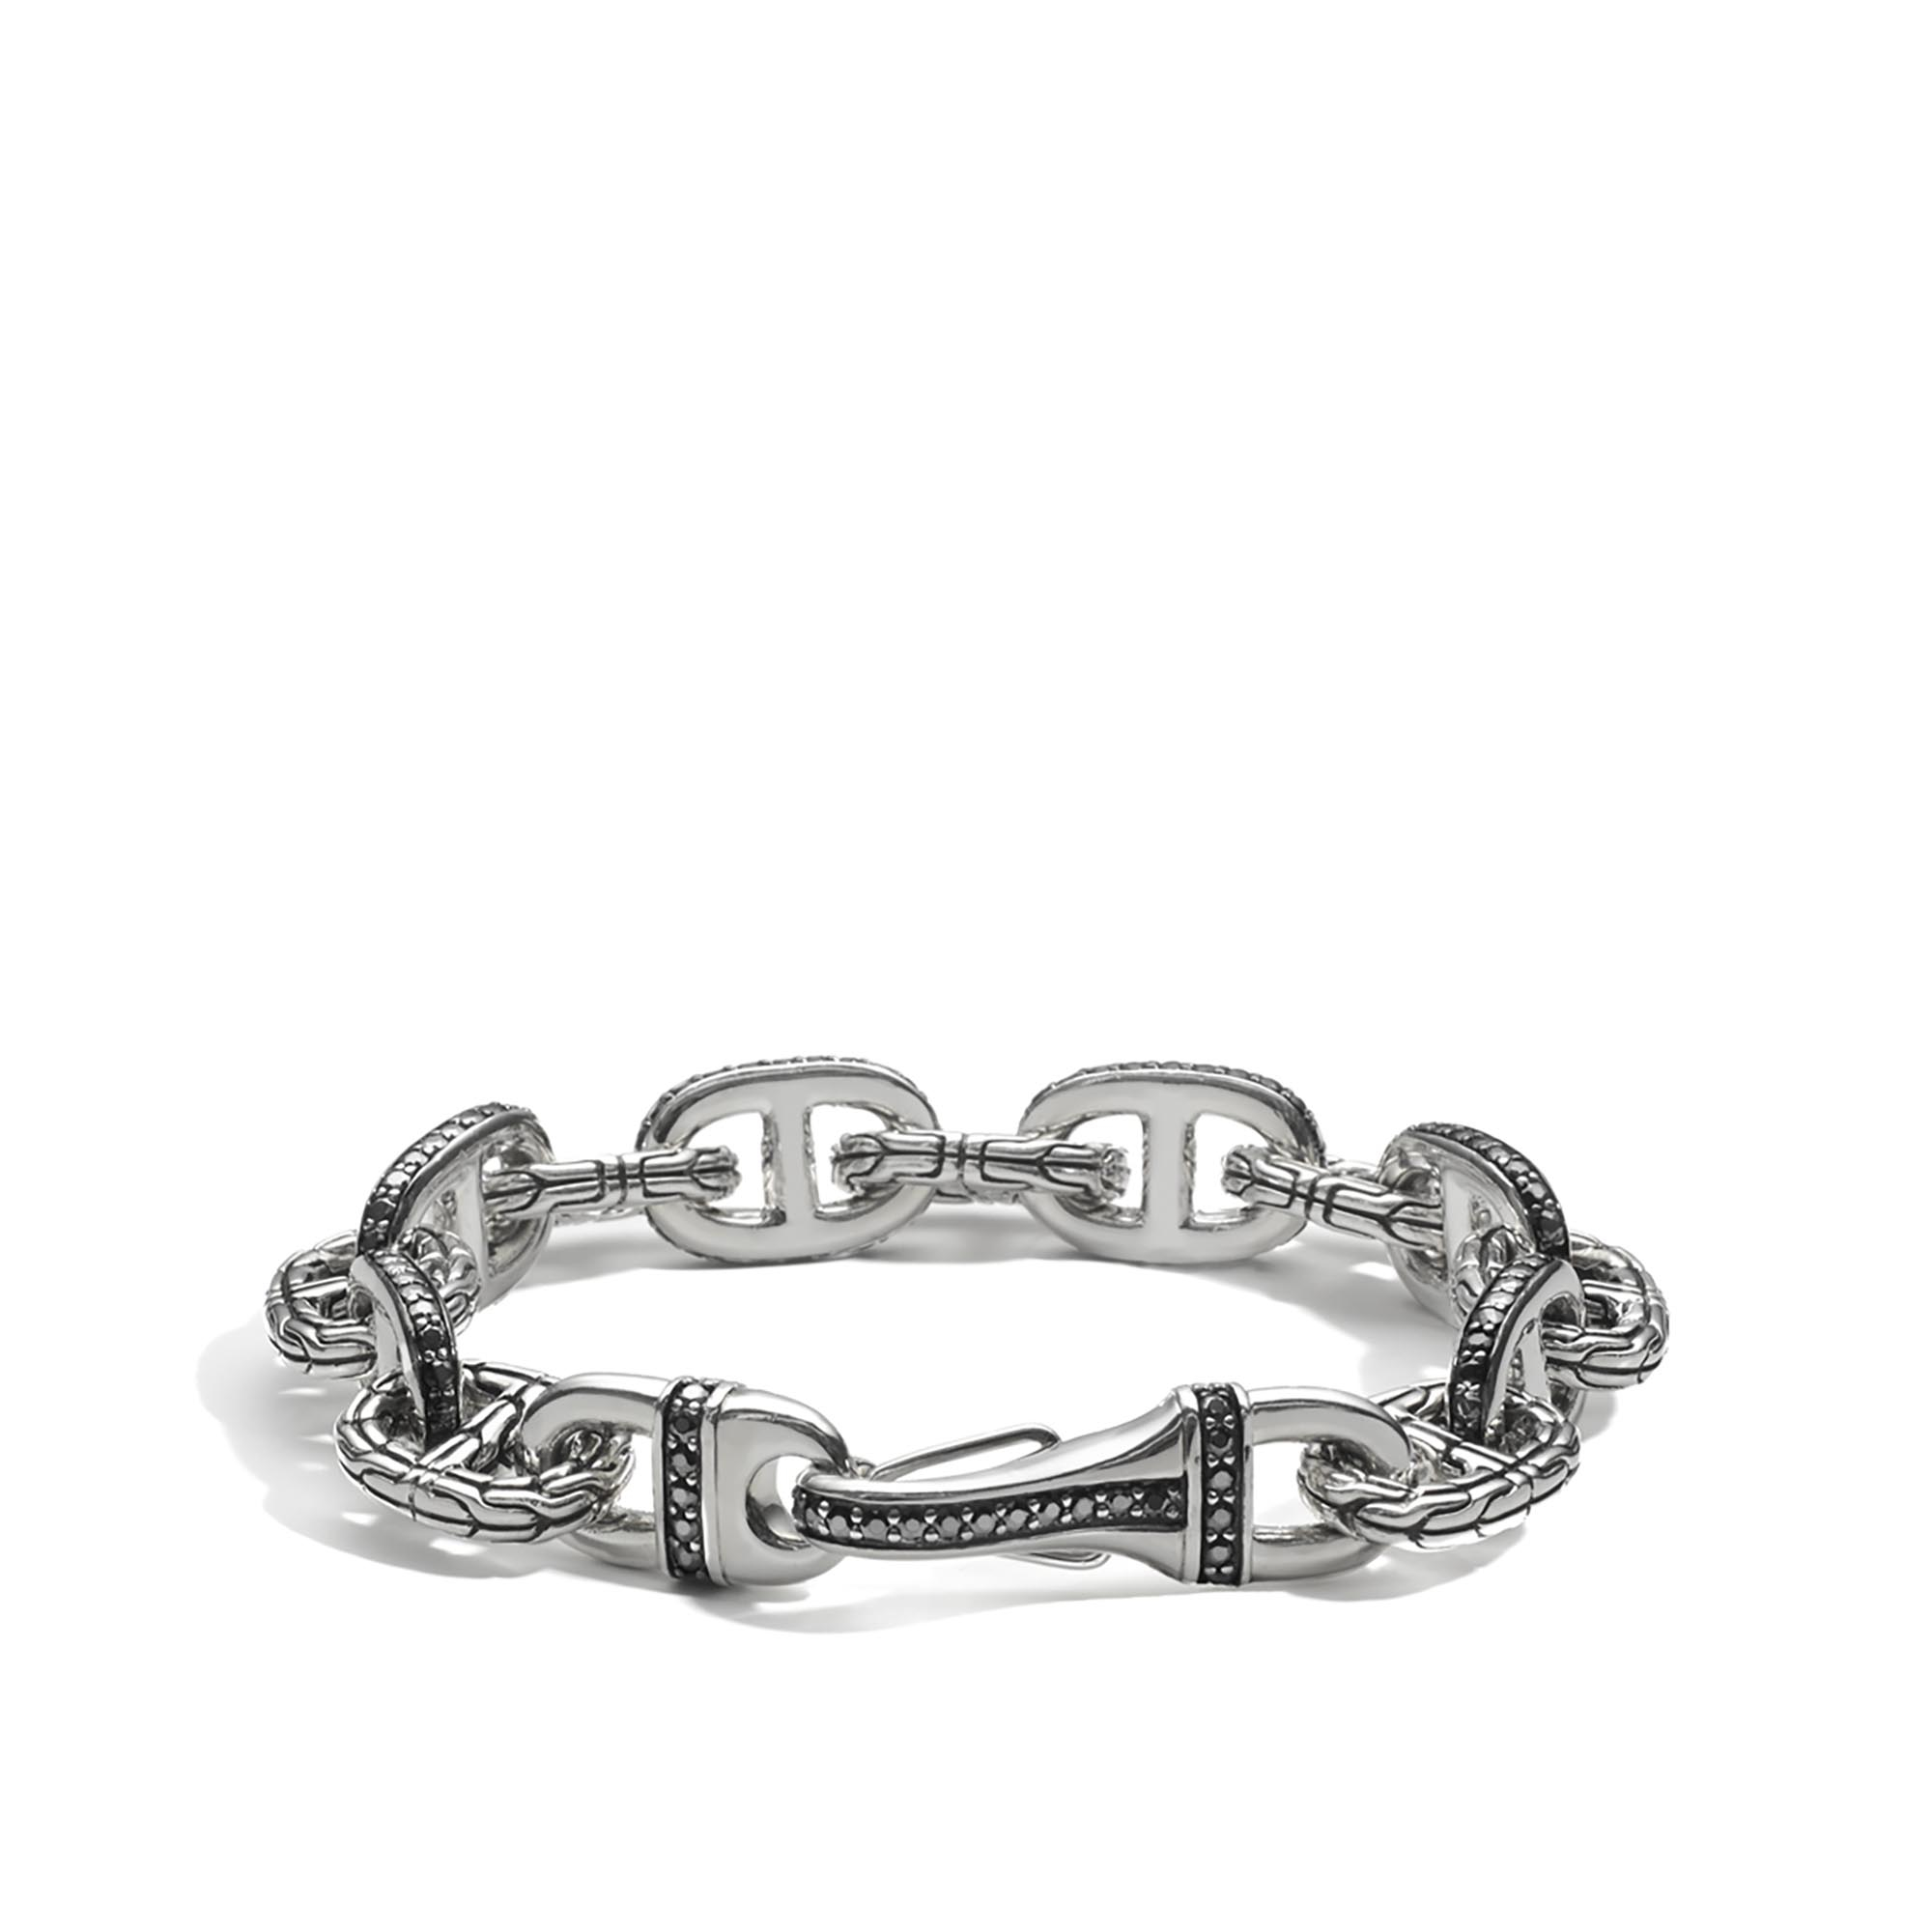 John Hardy Classic Chain Hammered Link Bracelet S jEM5A2CD